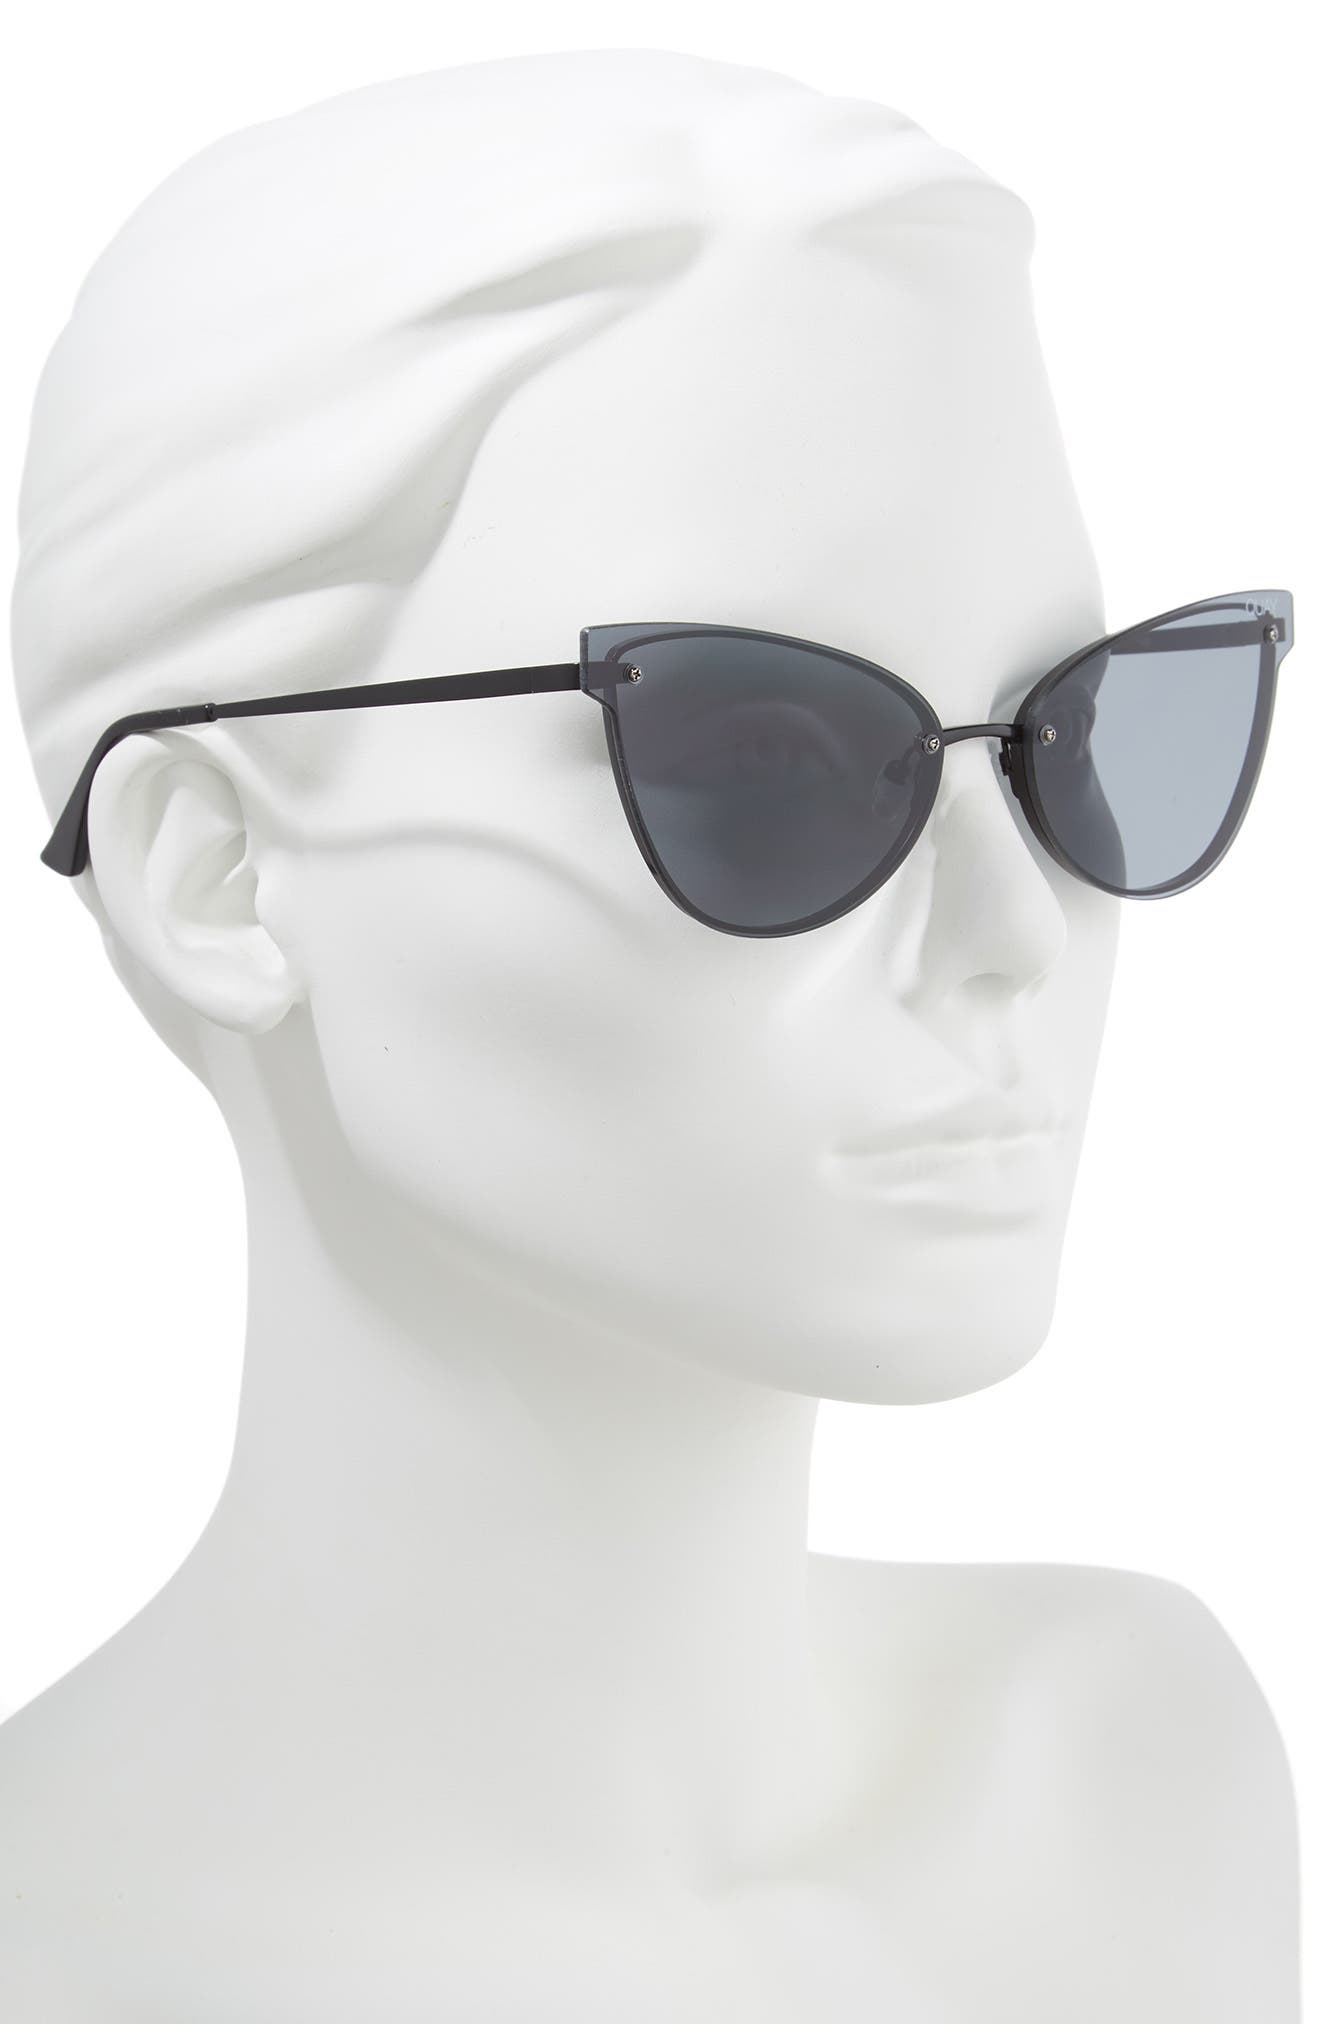 Lady Luck 60mm Cat Eye Sunglasses,                             Alternate thumbnail 2, color,                             001